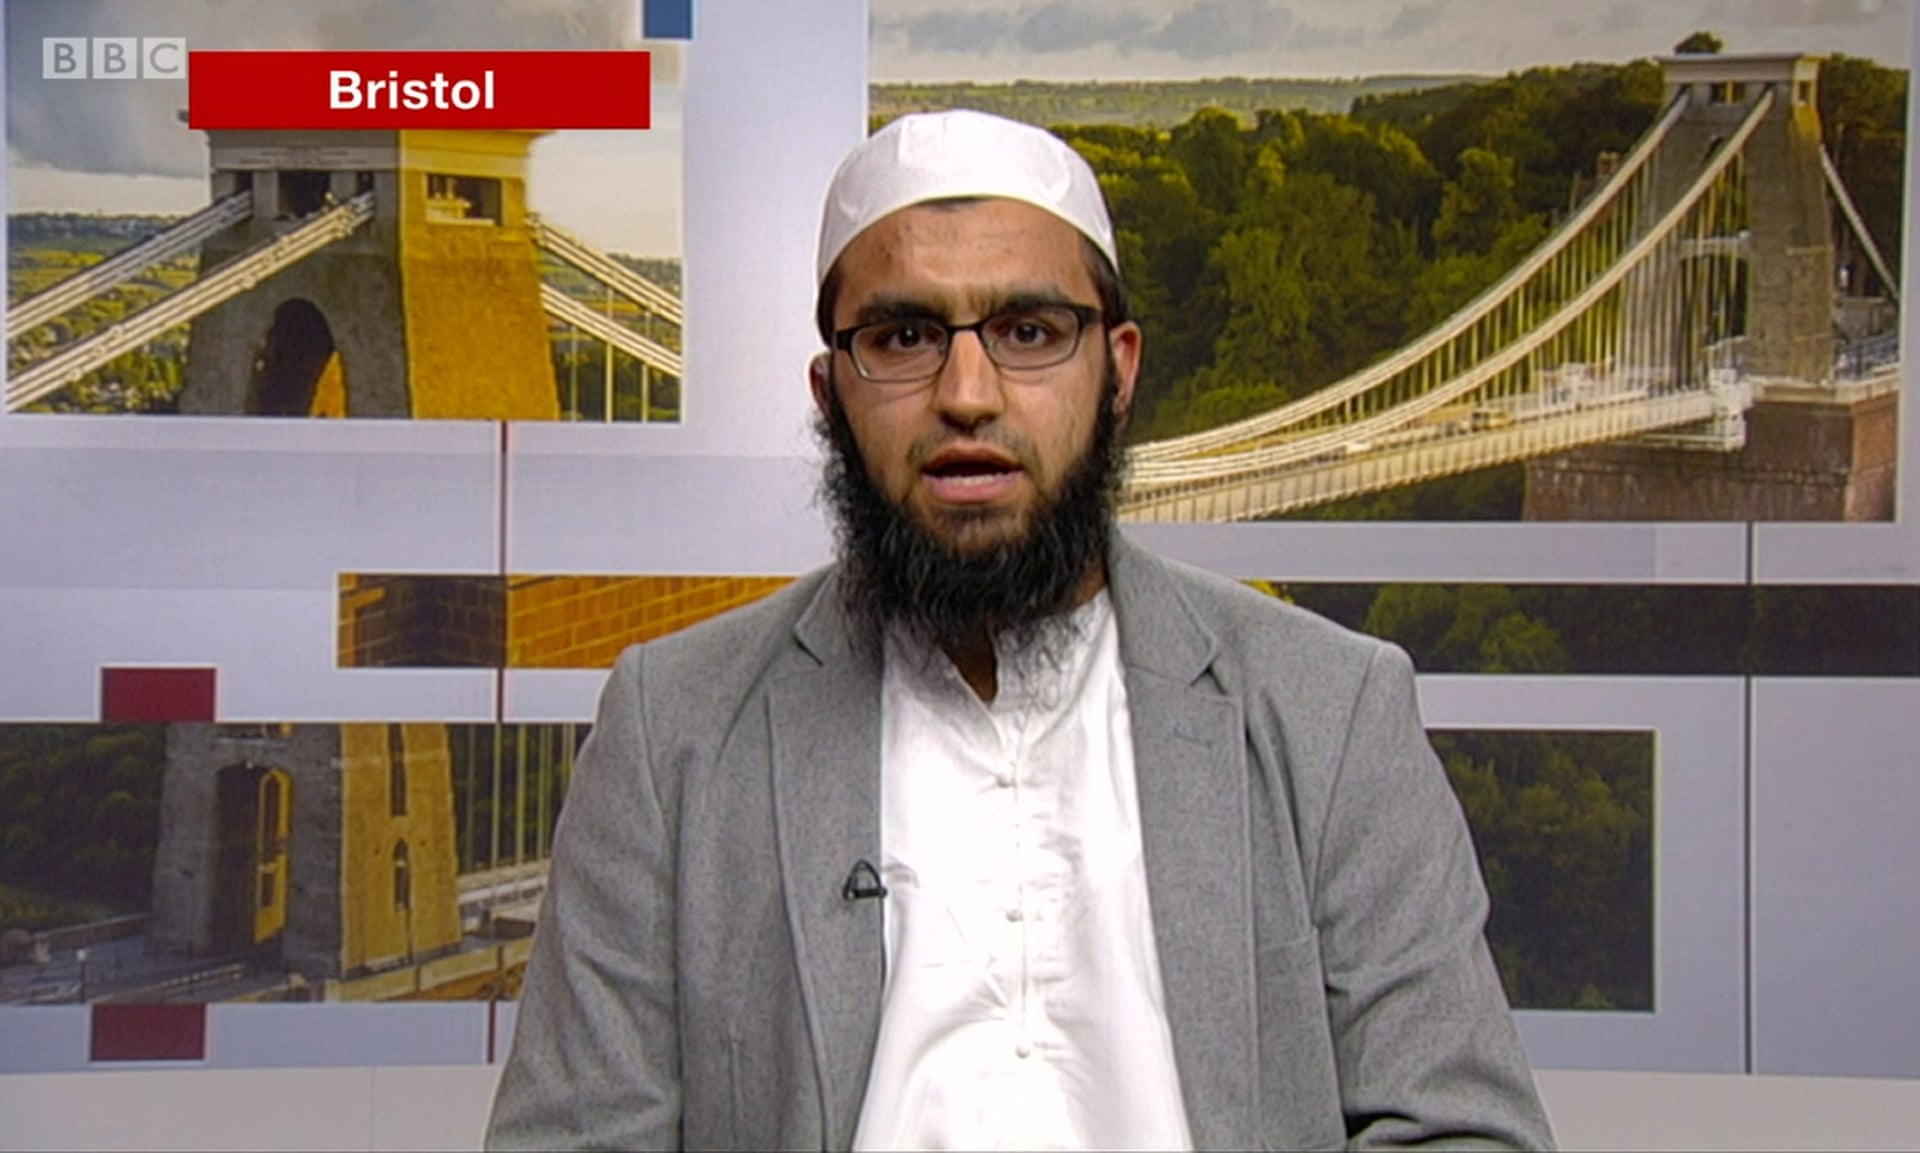 Imam and solicitor suspended from jobs after BBC Tory debate